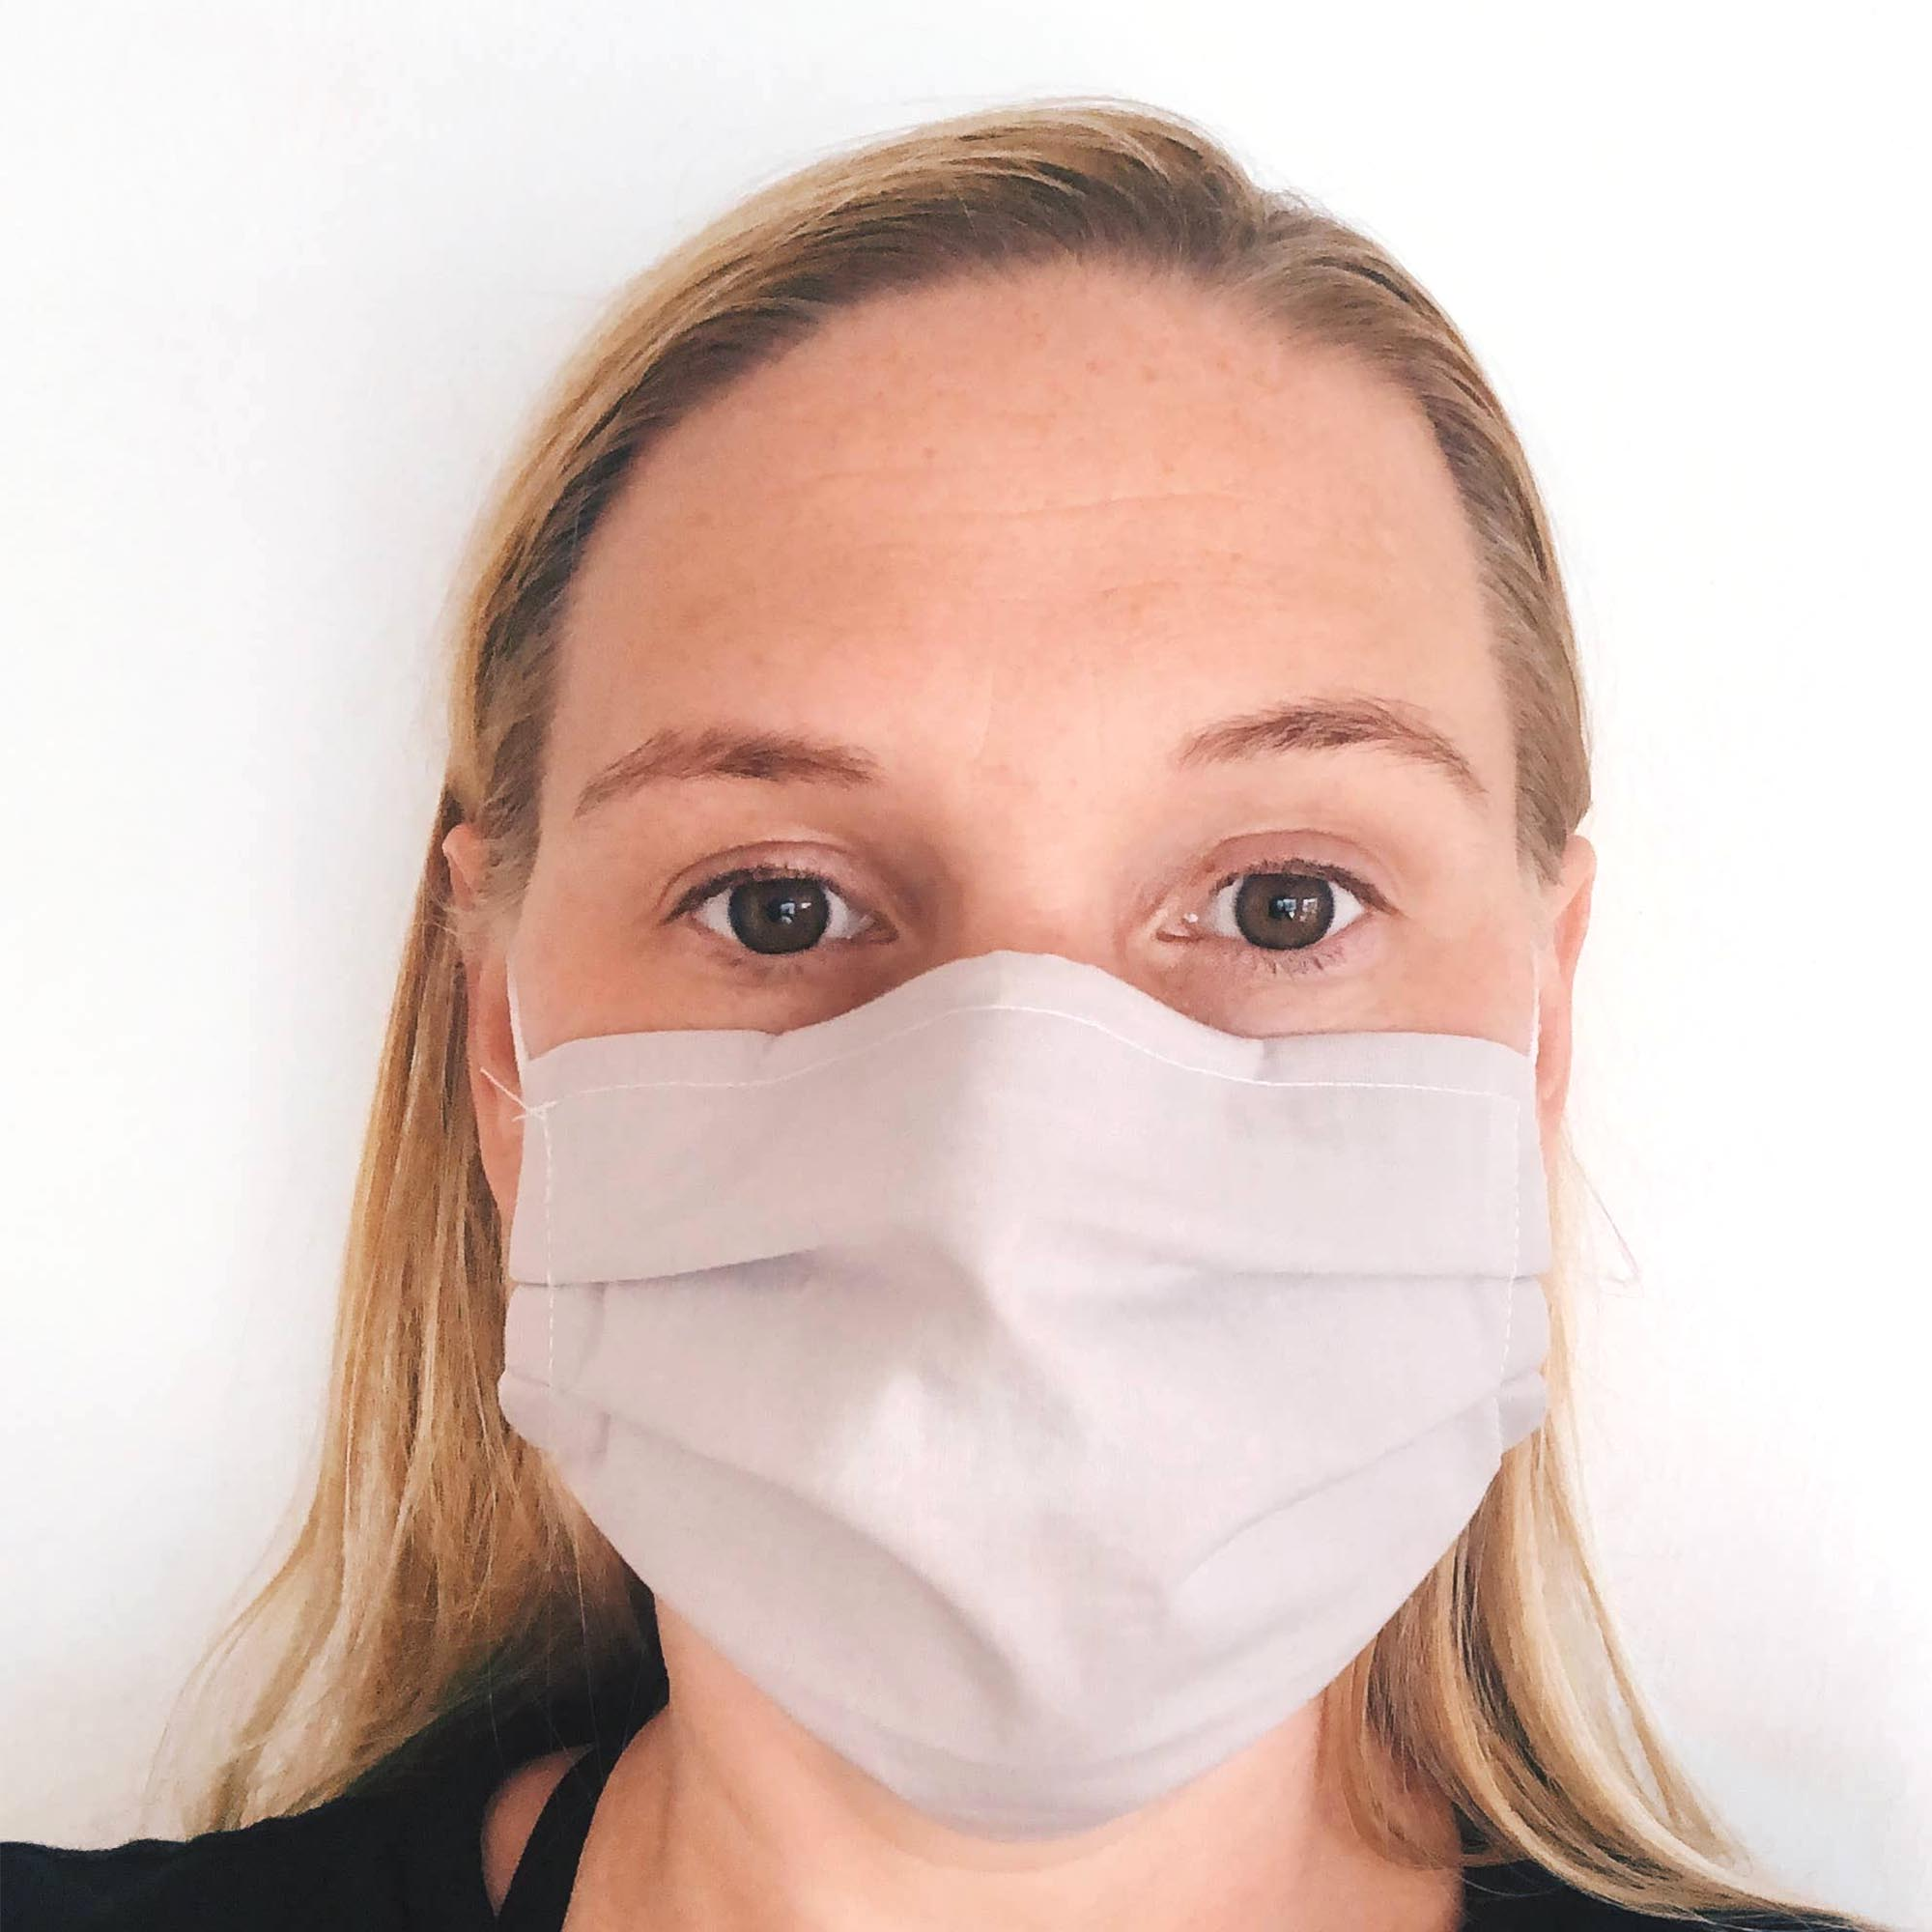 blonde women with brown eyes, wearing grey face mask in front of white backdrop